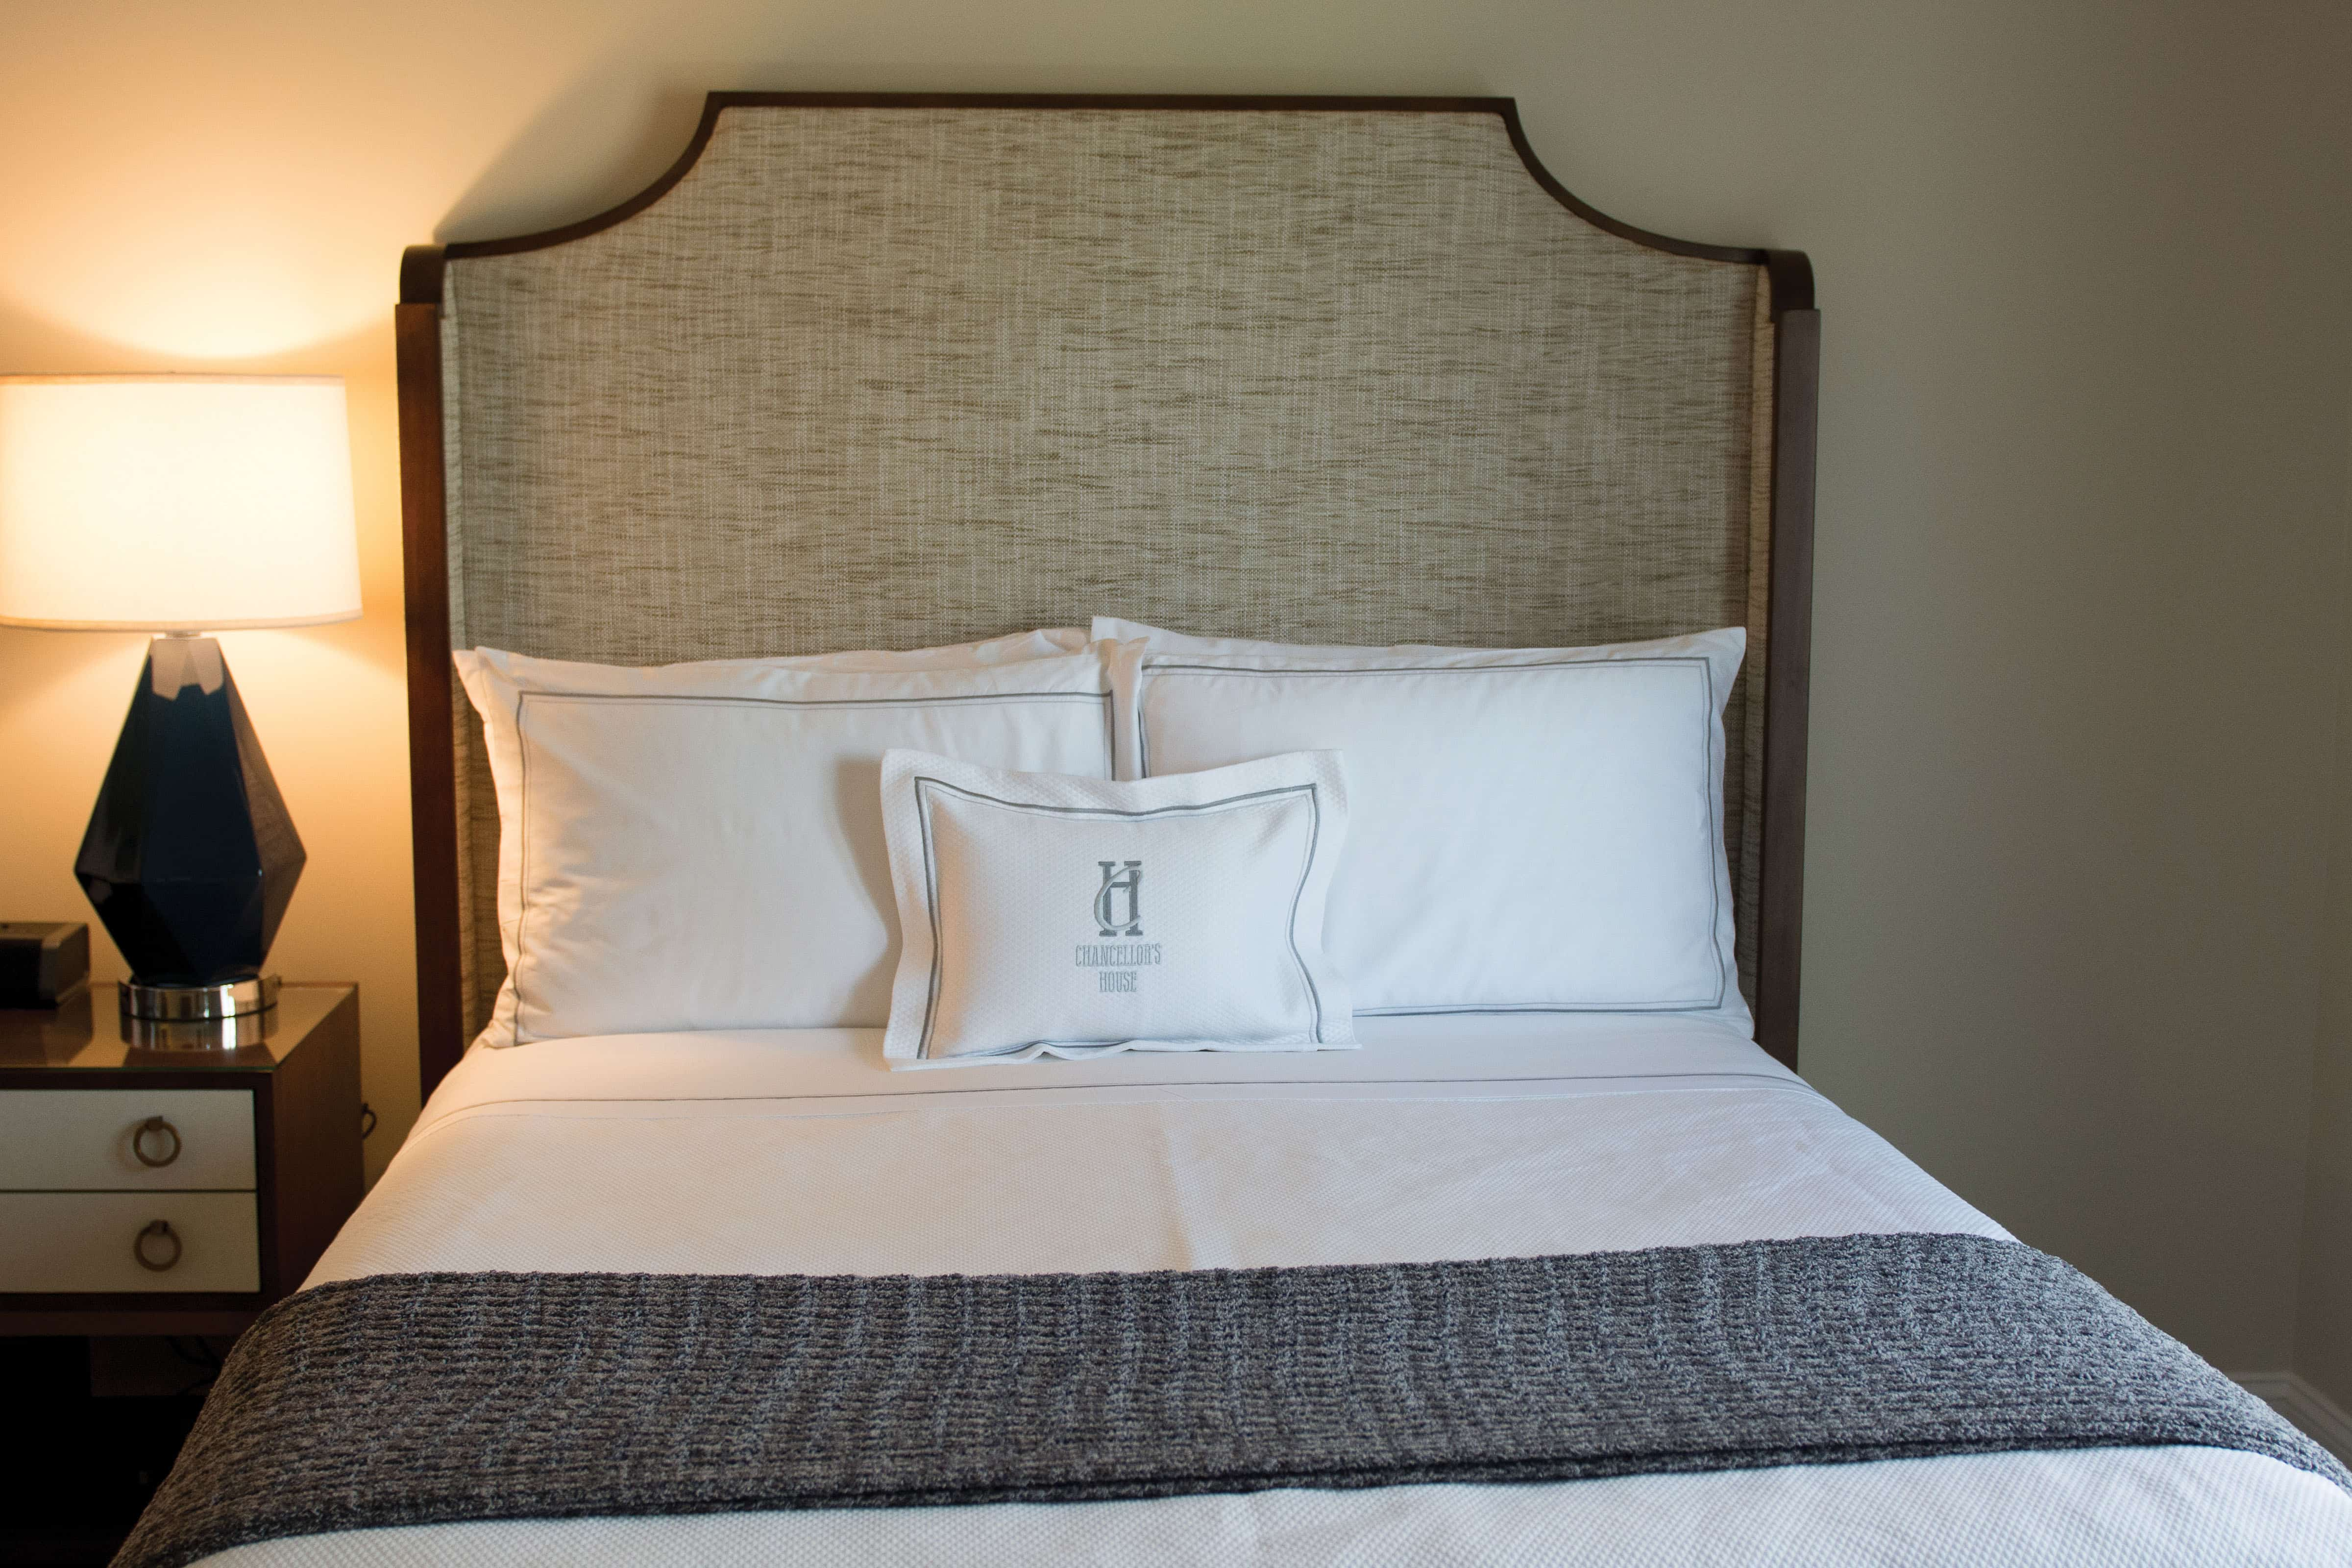 Guest's rooms feature luxurious accommodations.